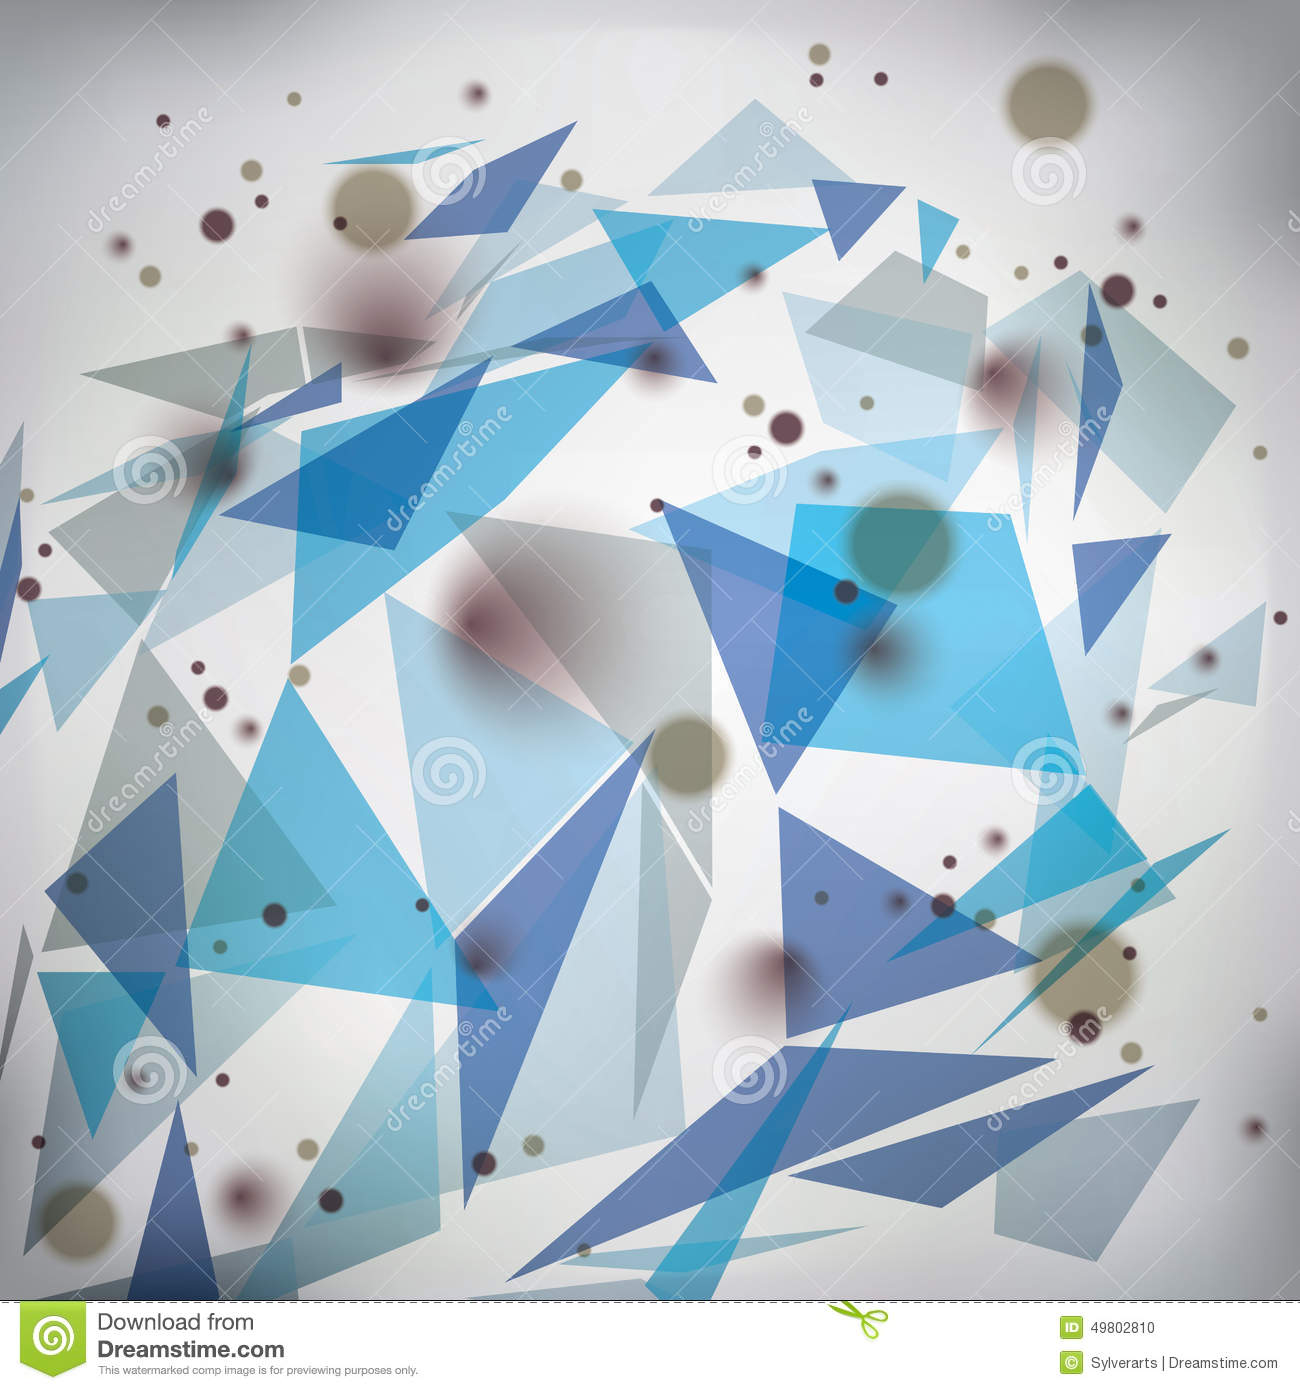 Geometric vector abstract 3D complicated op art backdrop, eps10 conceptual tech illustration, best for web and graphic design.